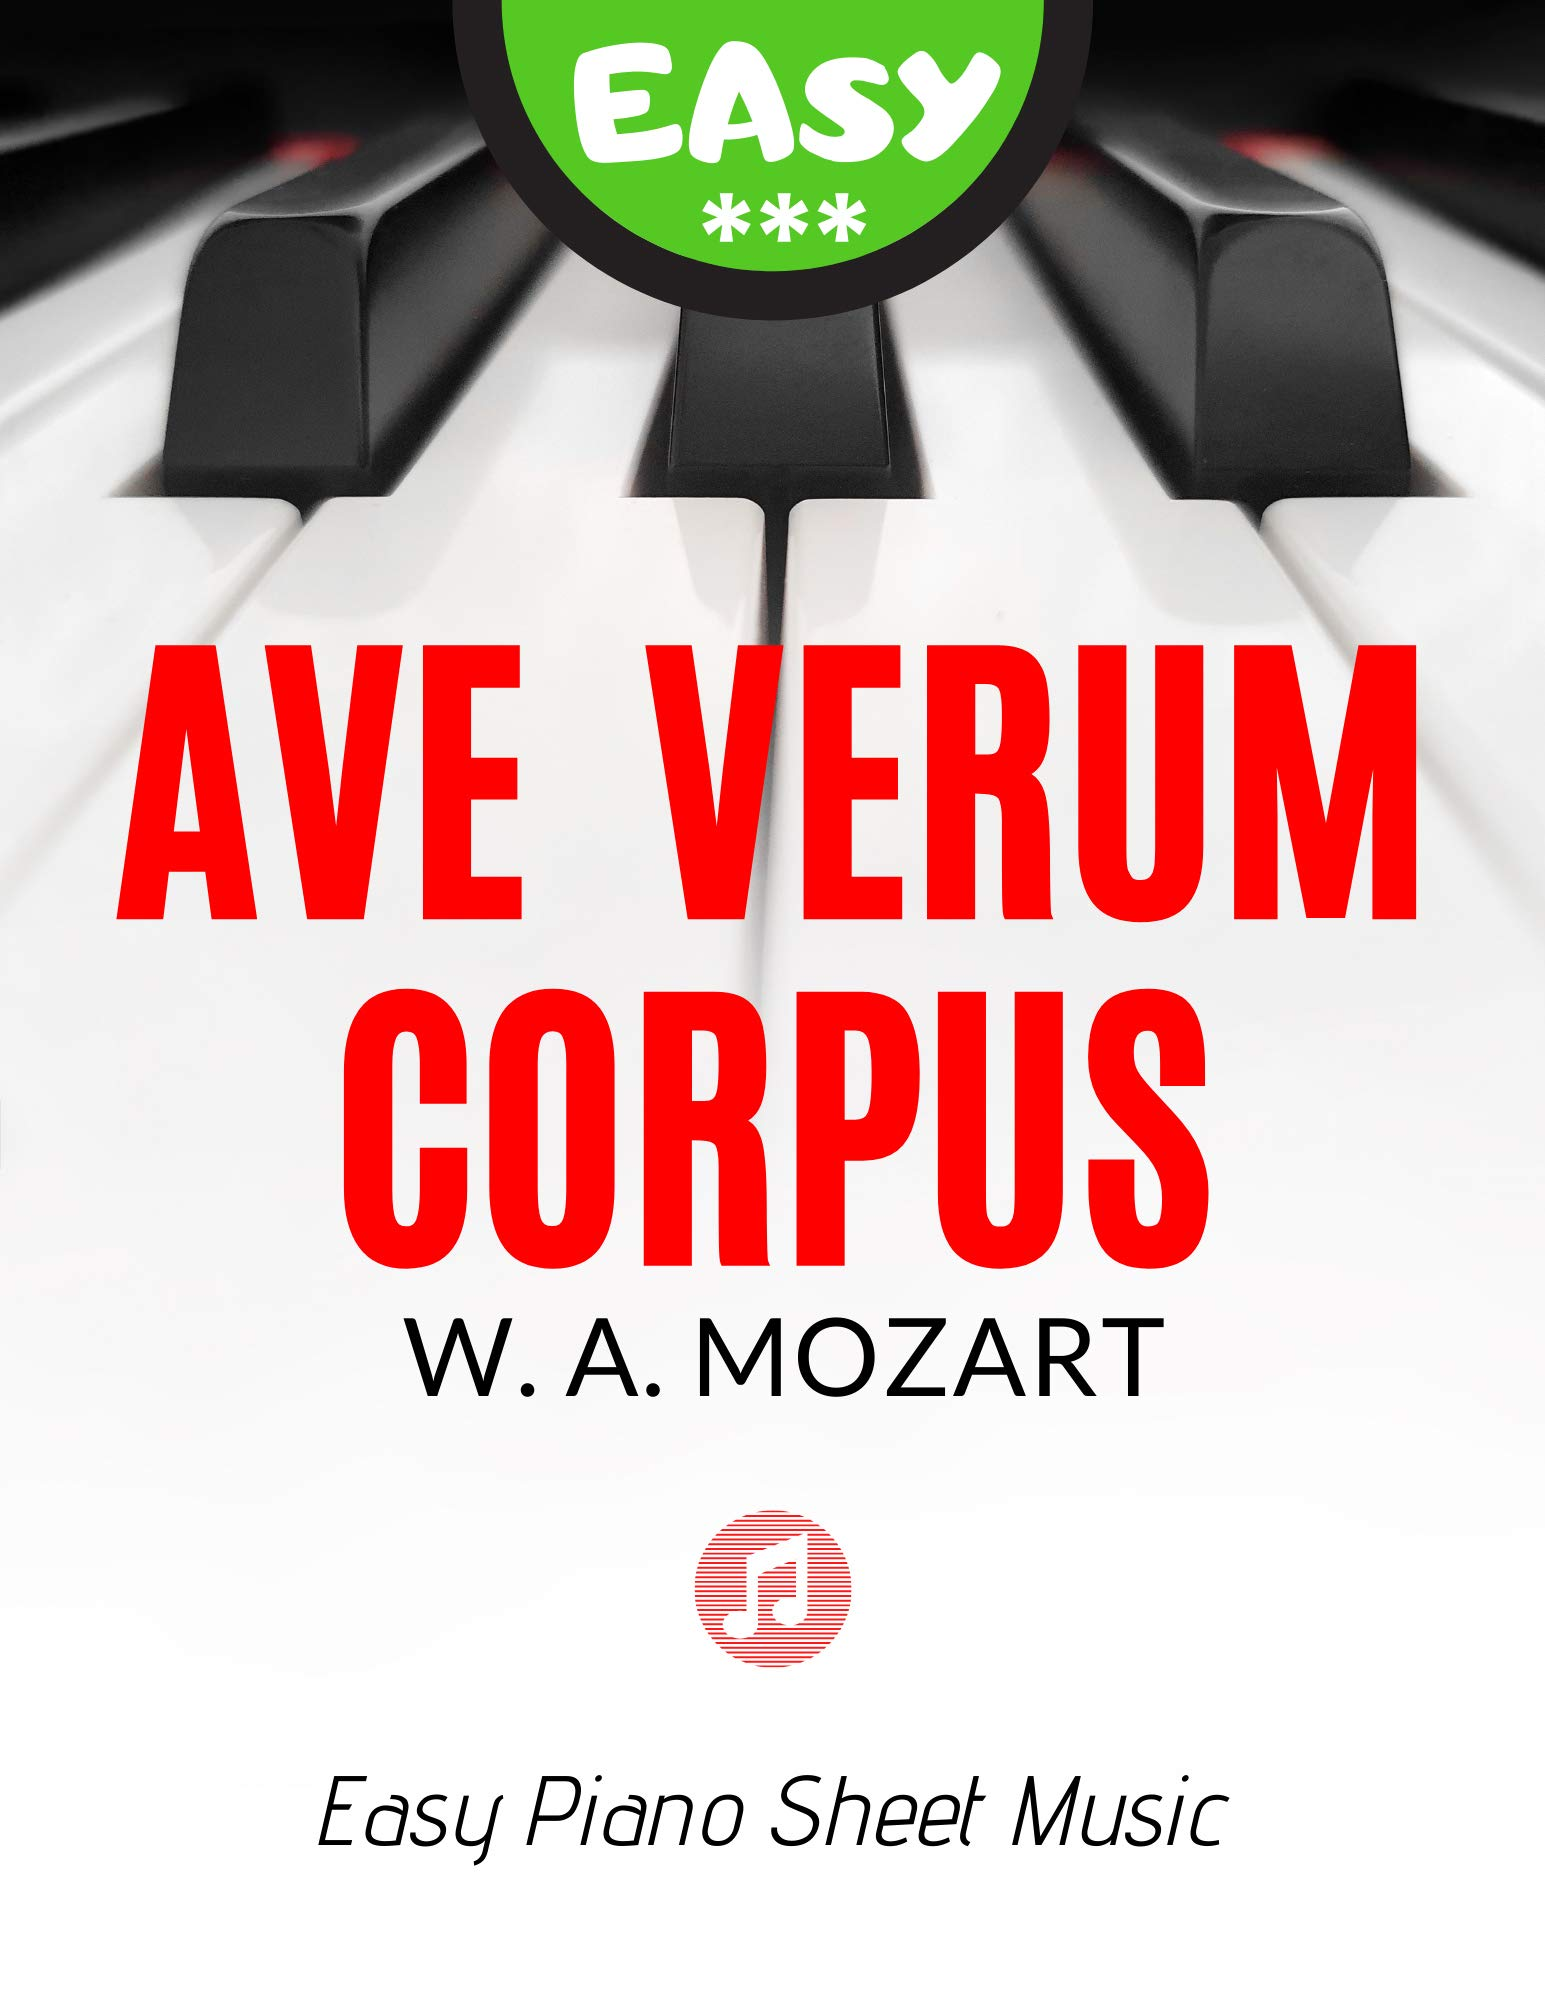 Ave Verum Corpus * Mozart * EASY Piano Sheet Music for Beginners Pianists: Lovely Easy & Classical Version for Kids, Seniors, Adults * Wedding Song * Church Organ, Keyboard * BIG notes